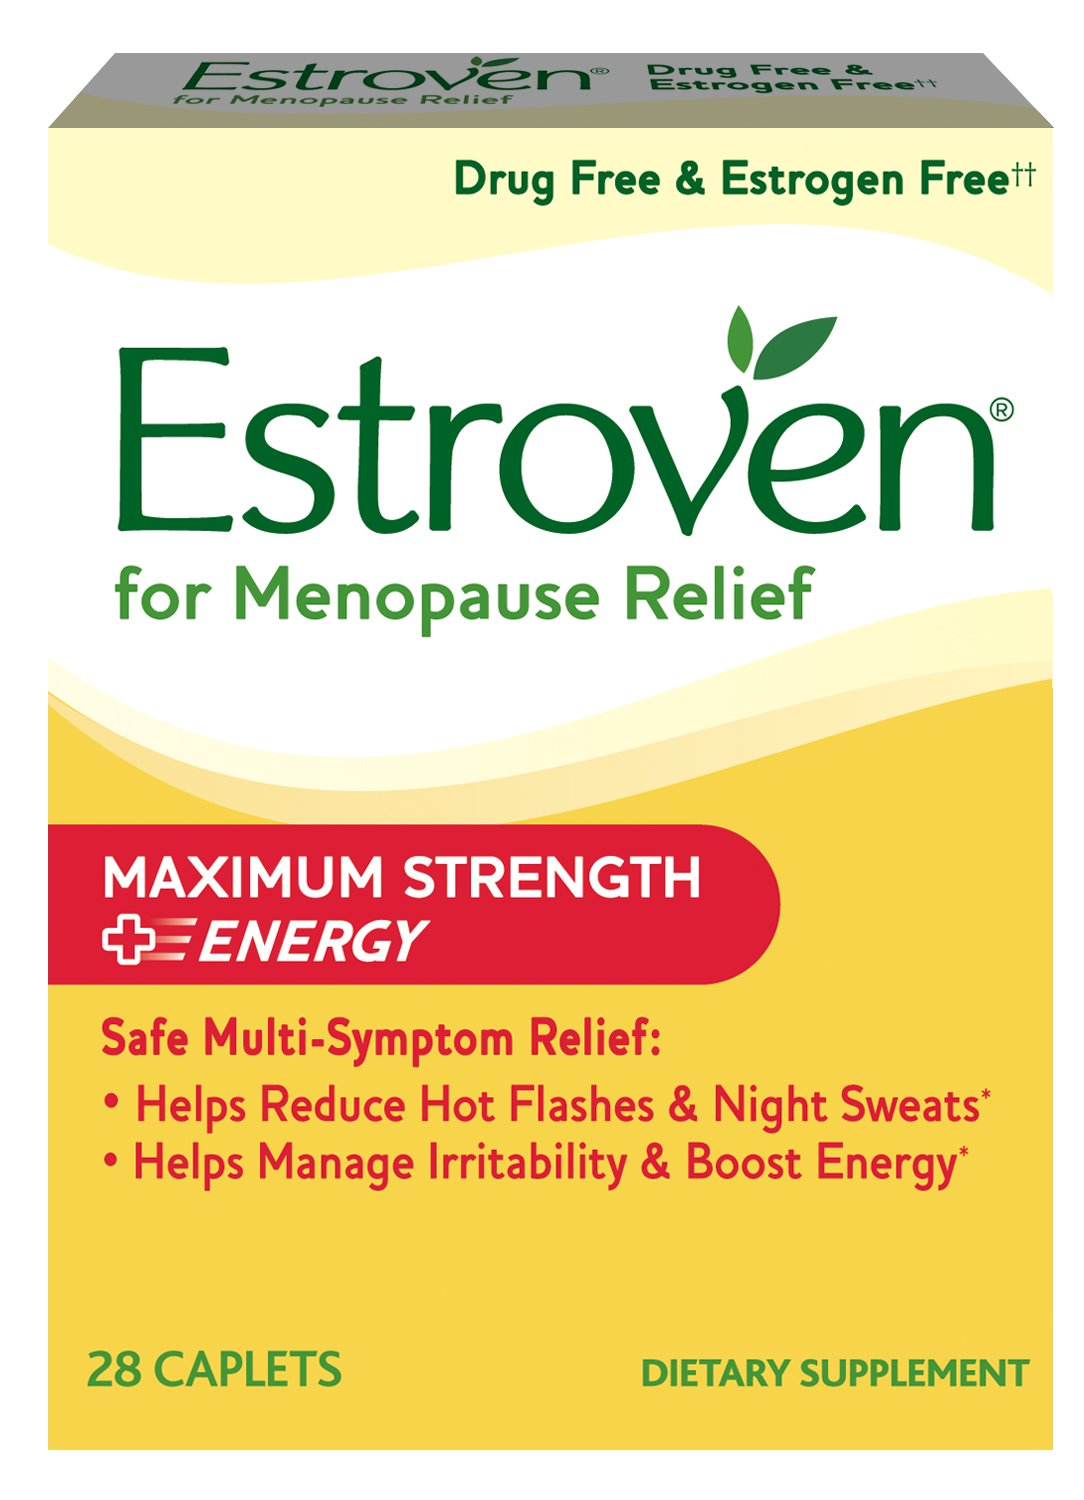 Estroven Maximum Strength + Energy, One Per Day, Multi-Symptom Menopause Relief: Black Cohosh, Soy Isoflavones, Green Tea Leaf Extract, Yerba Mate Leaf Extract, Magnolia Bark Extract, 28 Count